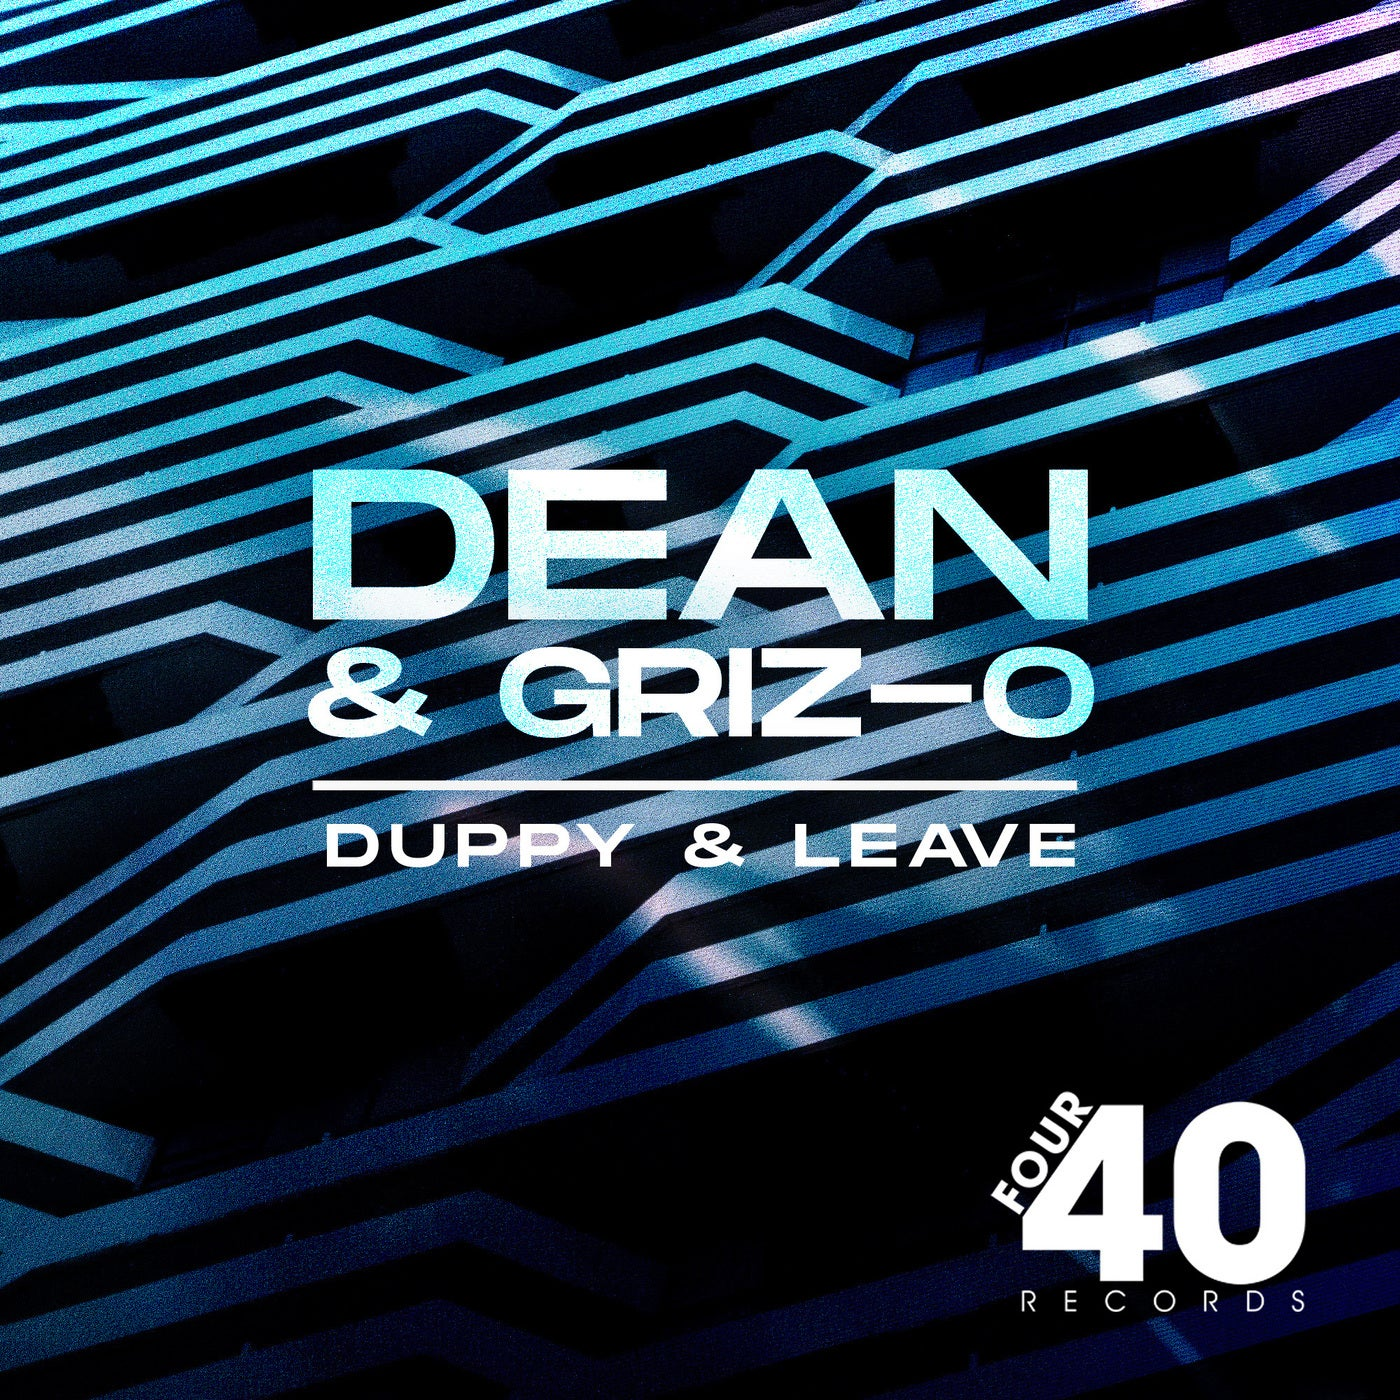 Duppy And Leave (Original Mix)